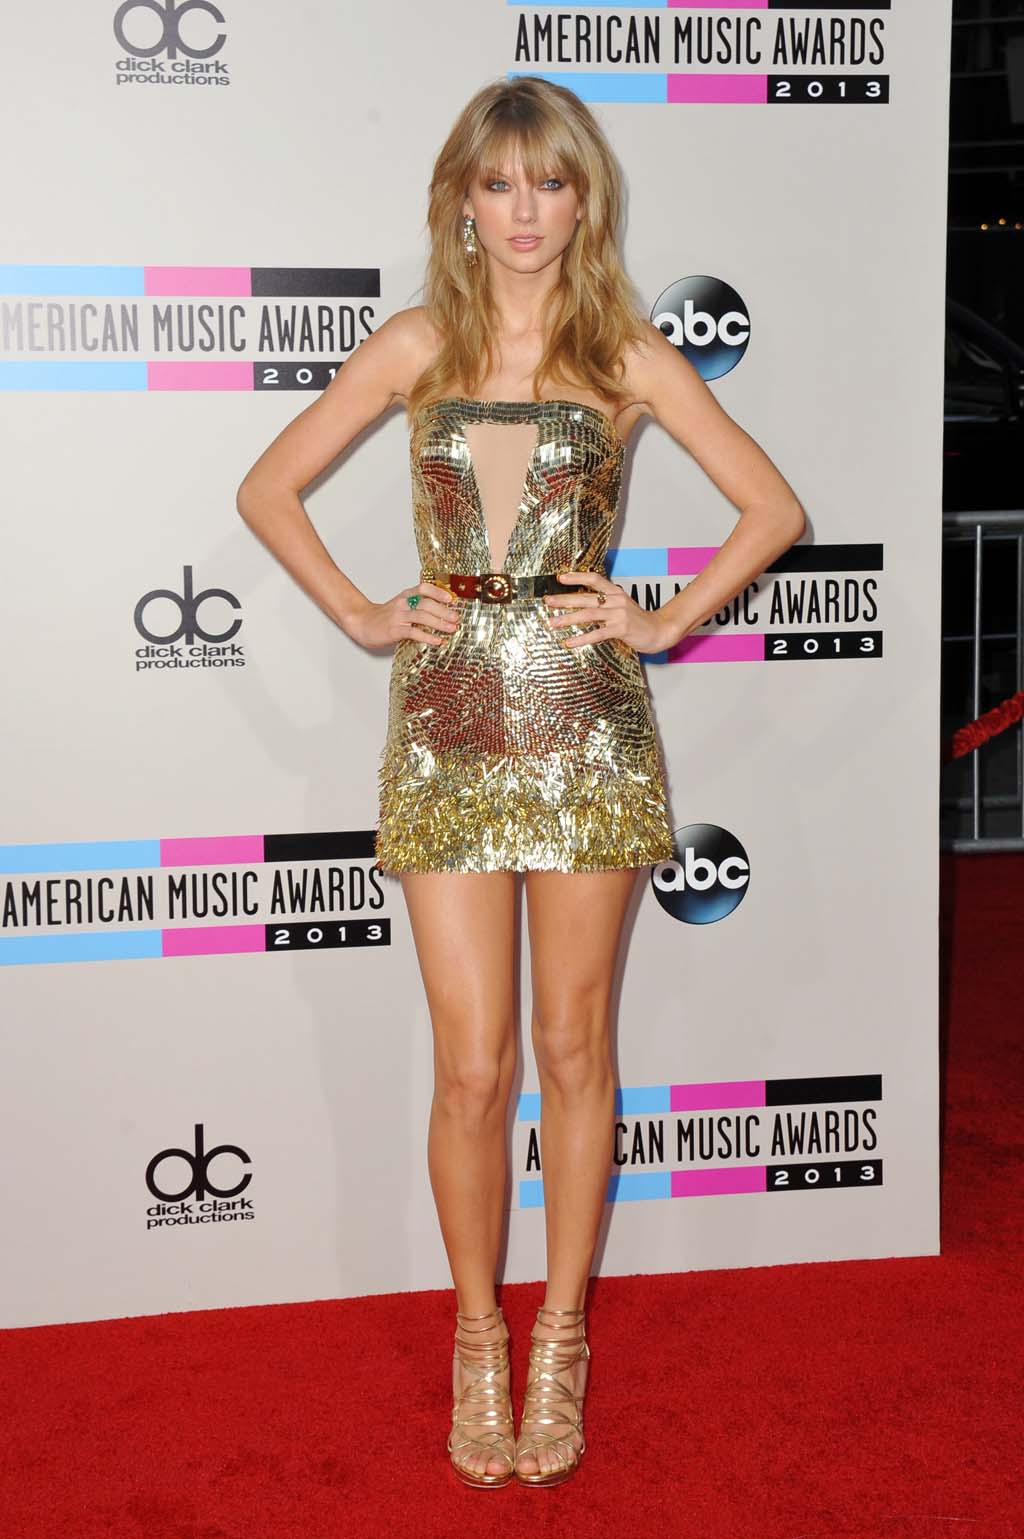 AMAs Red Carpet: Lots of leg, and a side of cleavage - Philly